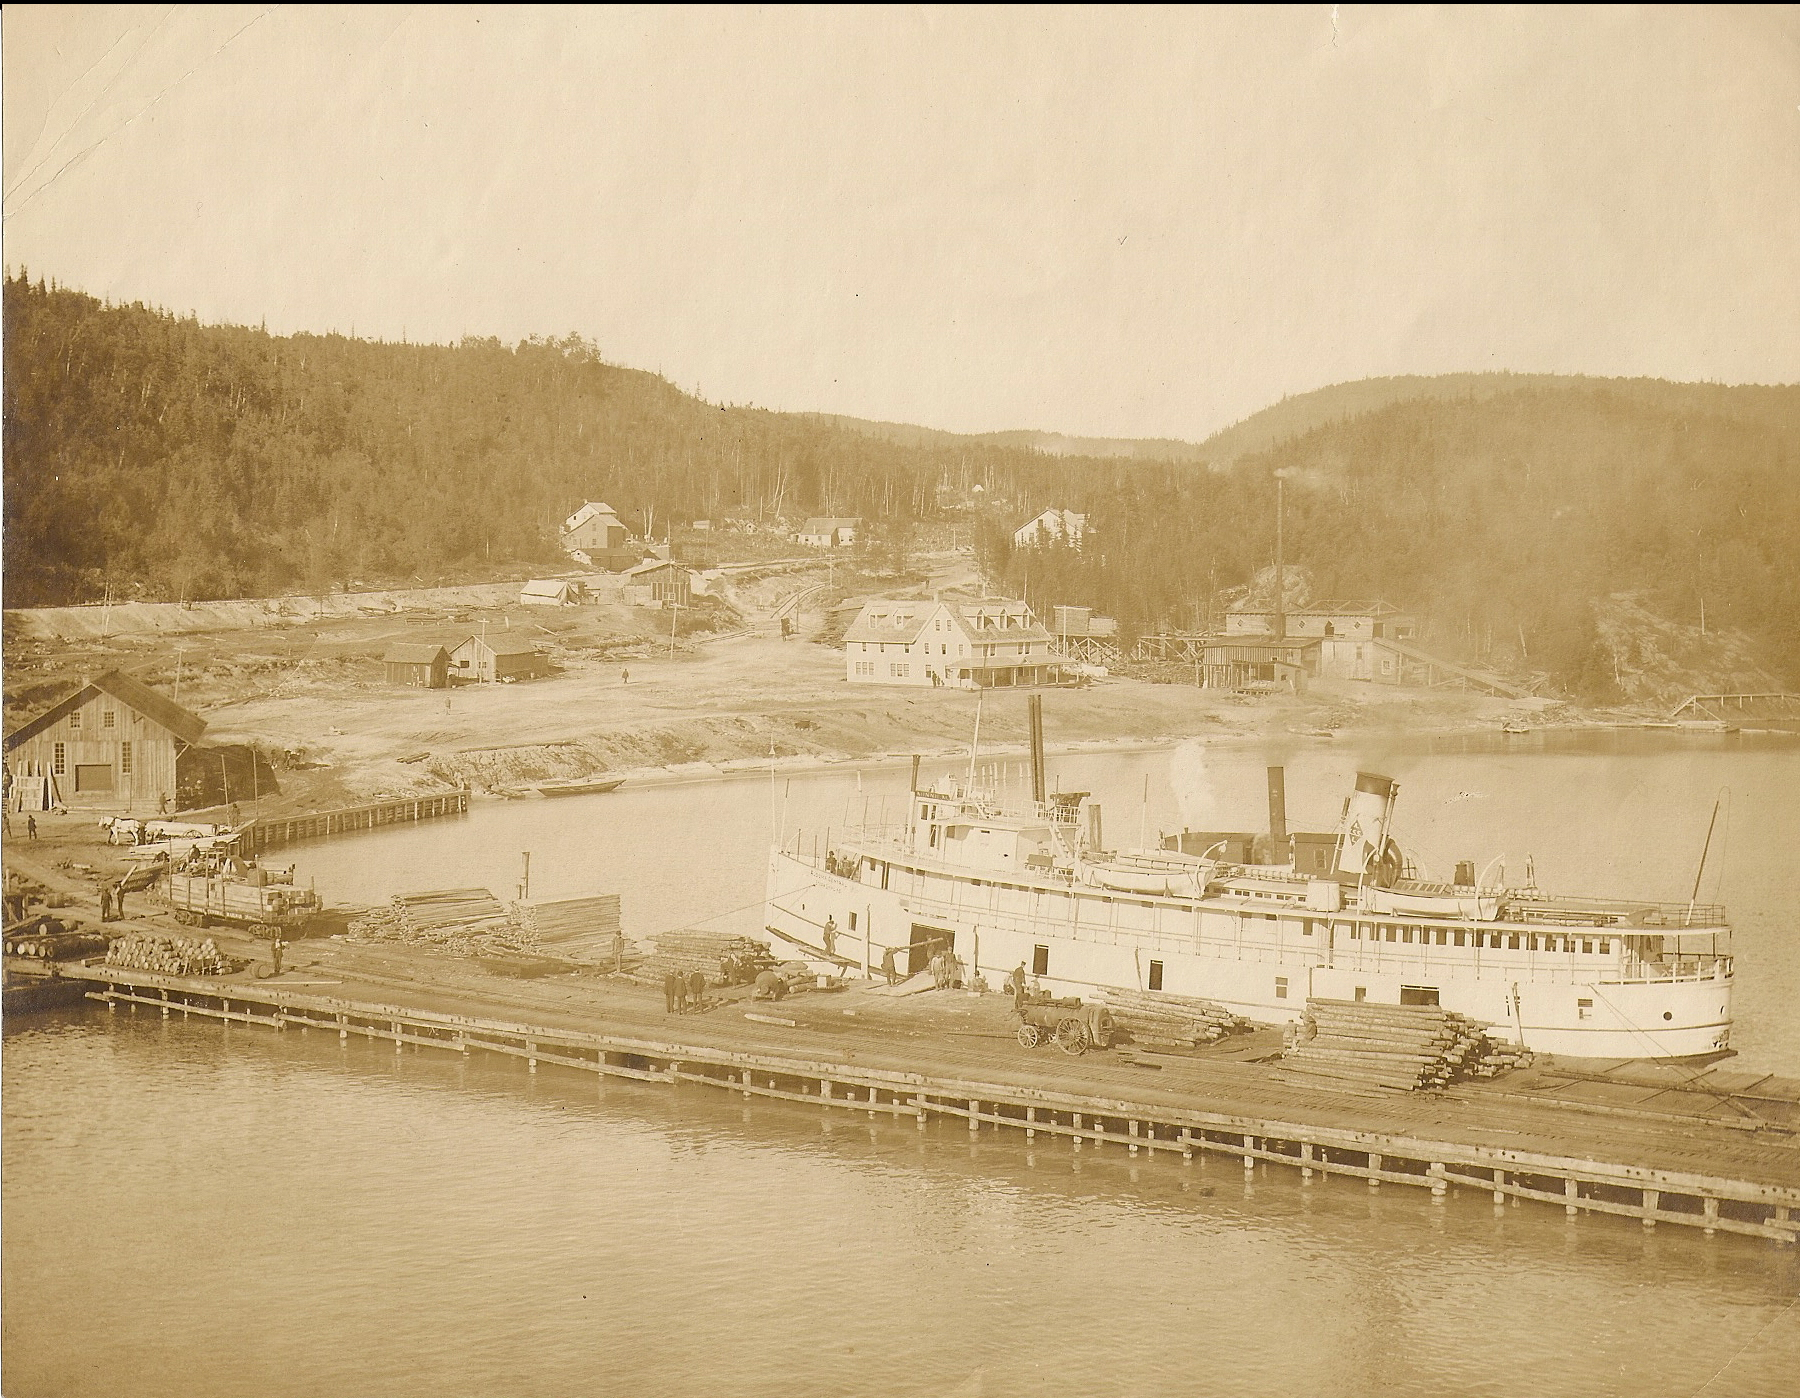 Minnie M in Michipicoten Harbour 1908